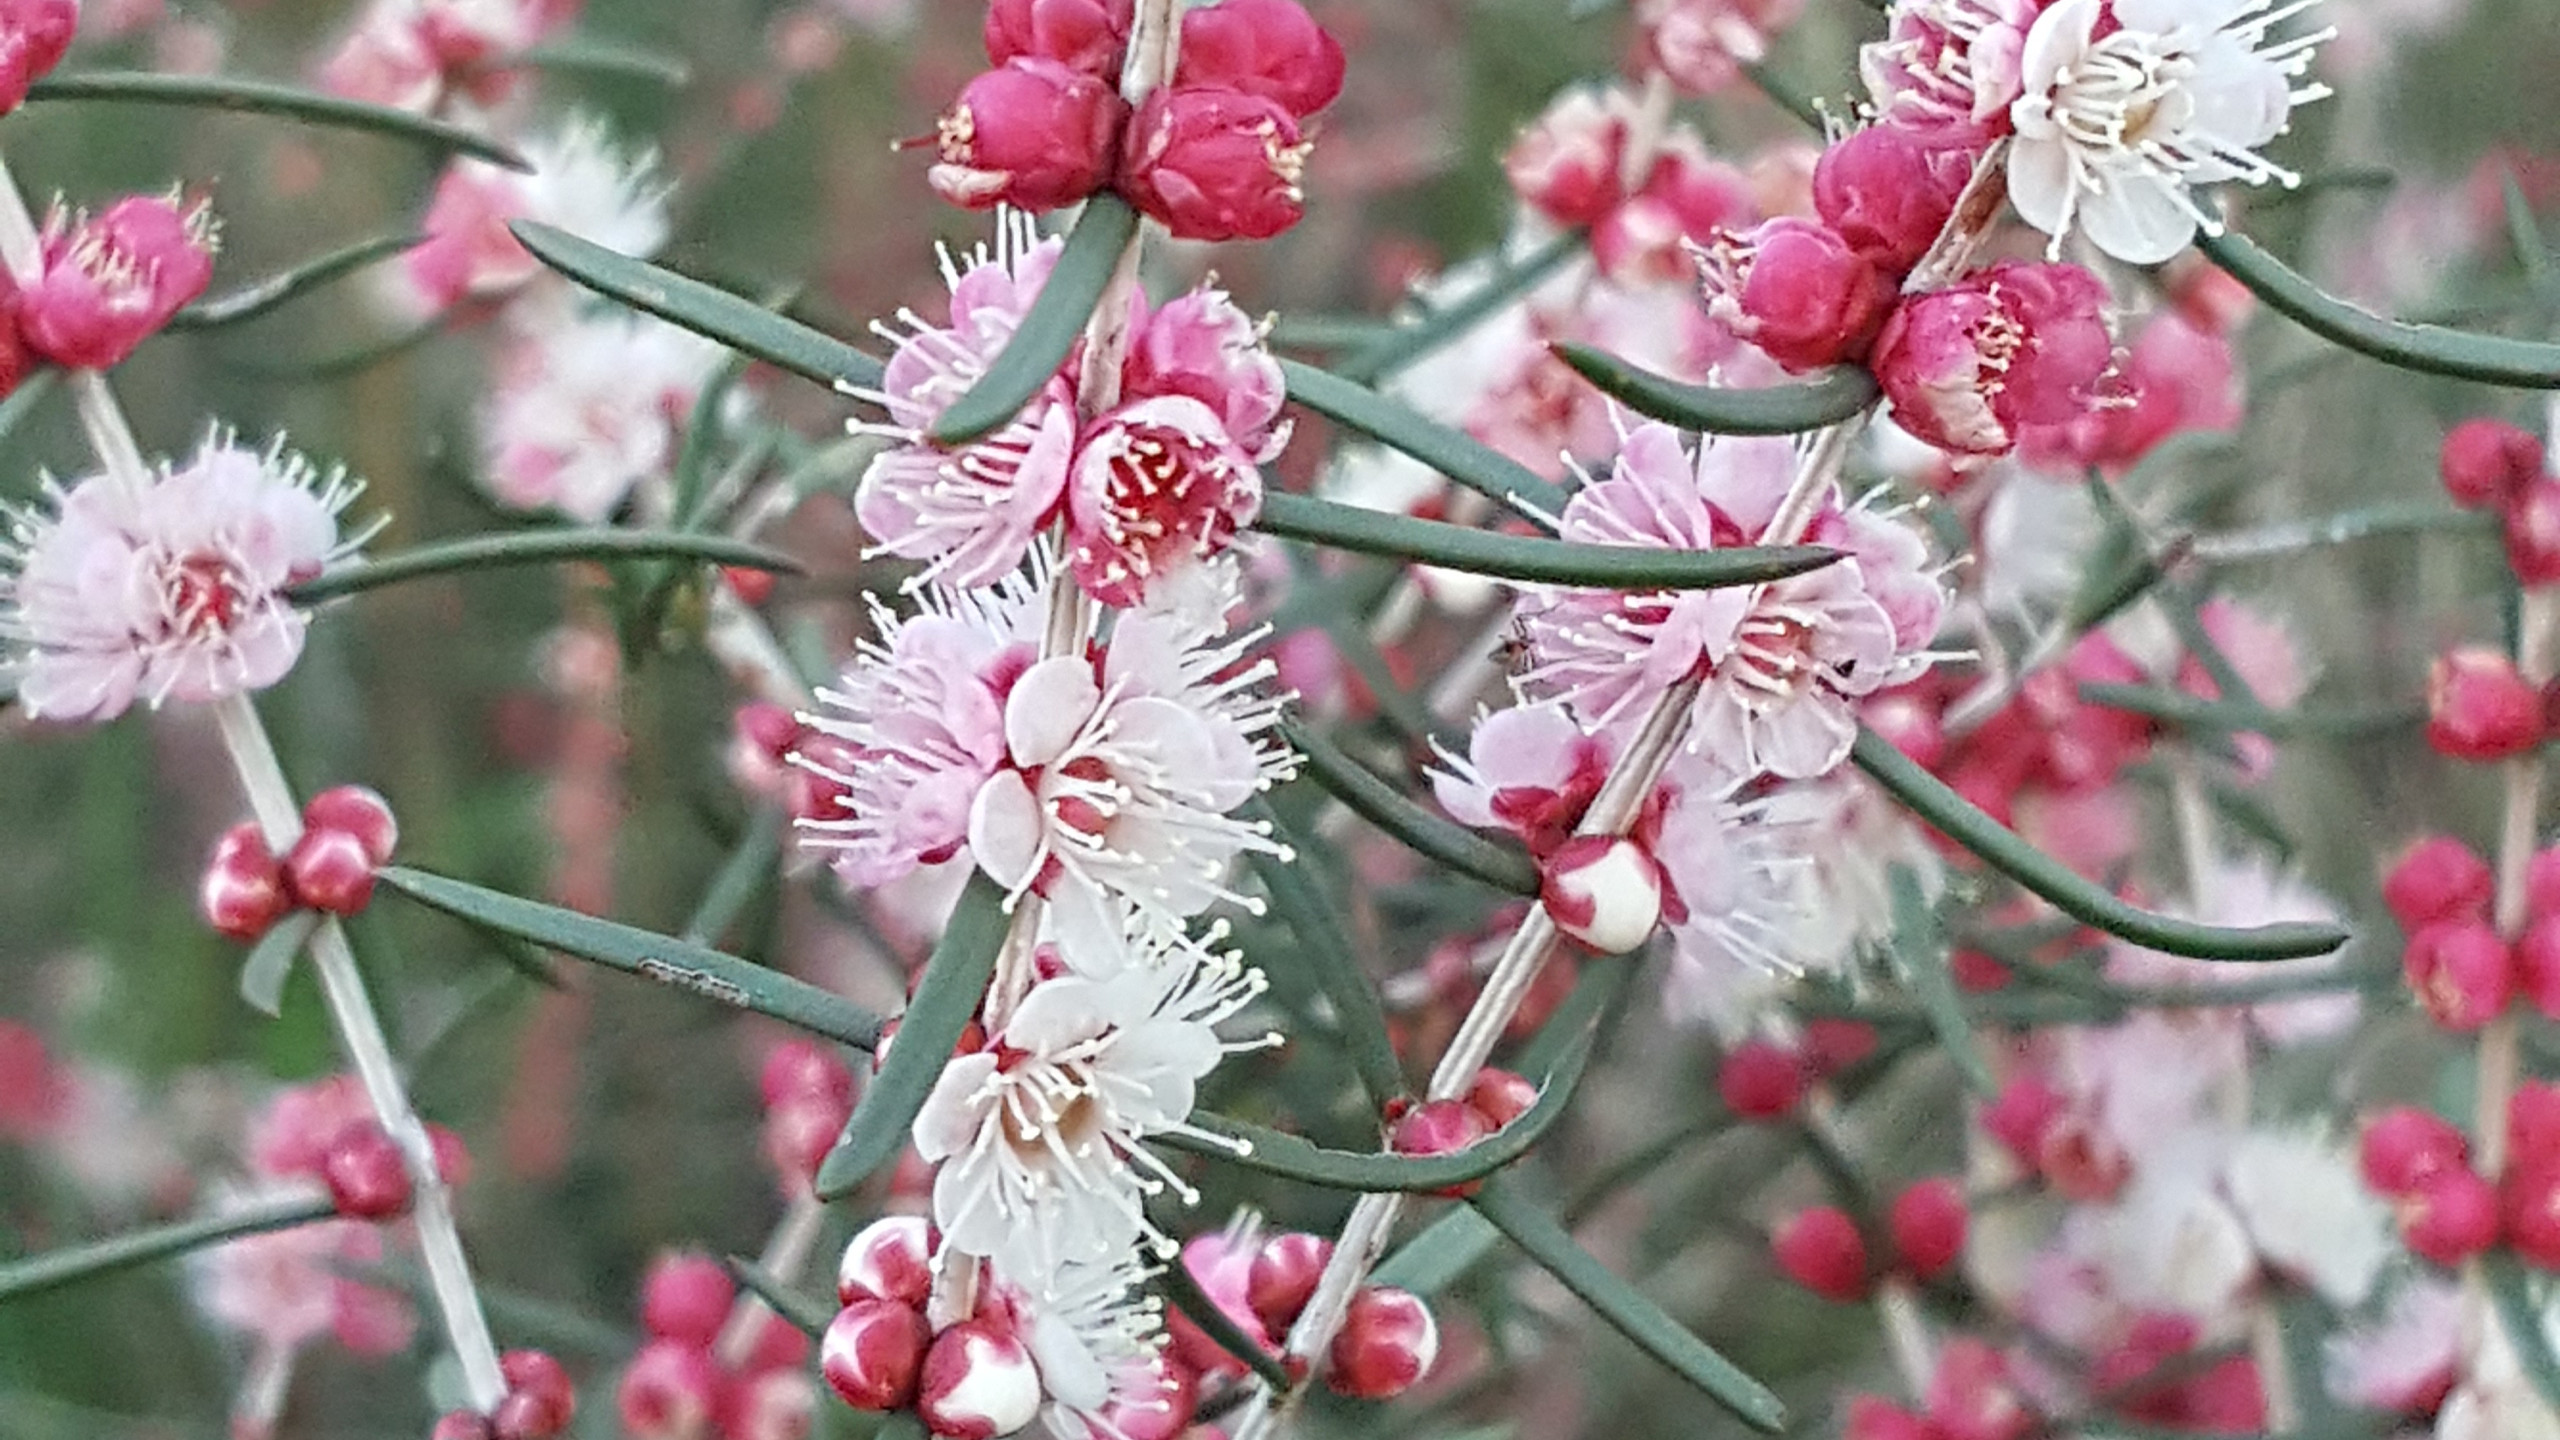 Swan River Myrtle - Flowers in Perth Hills (23)